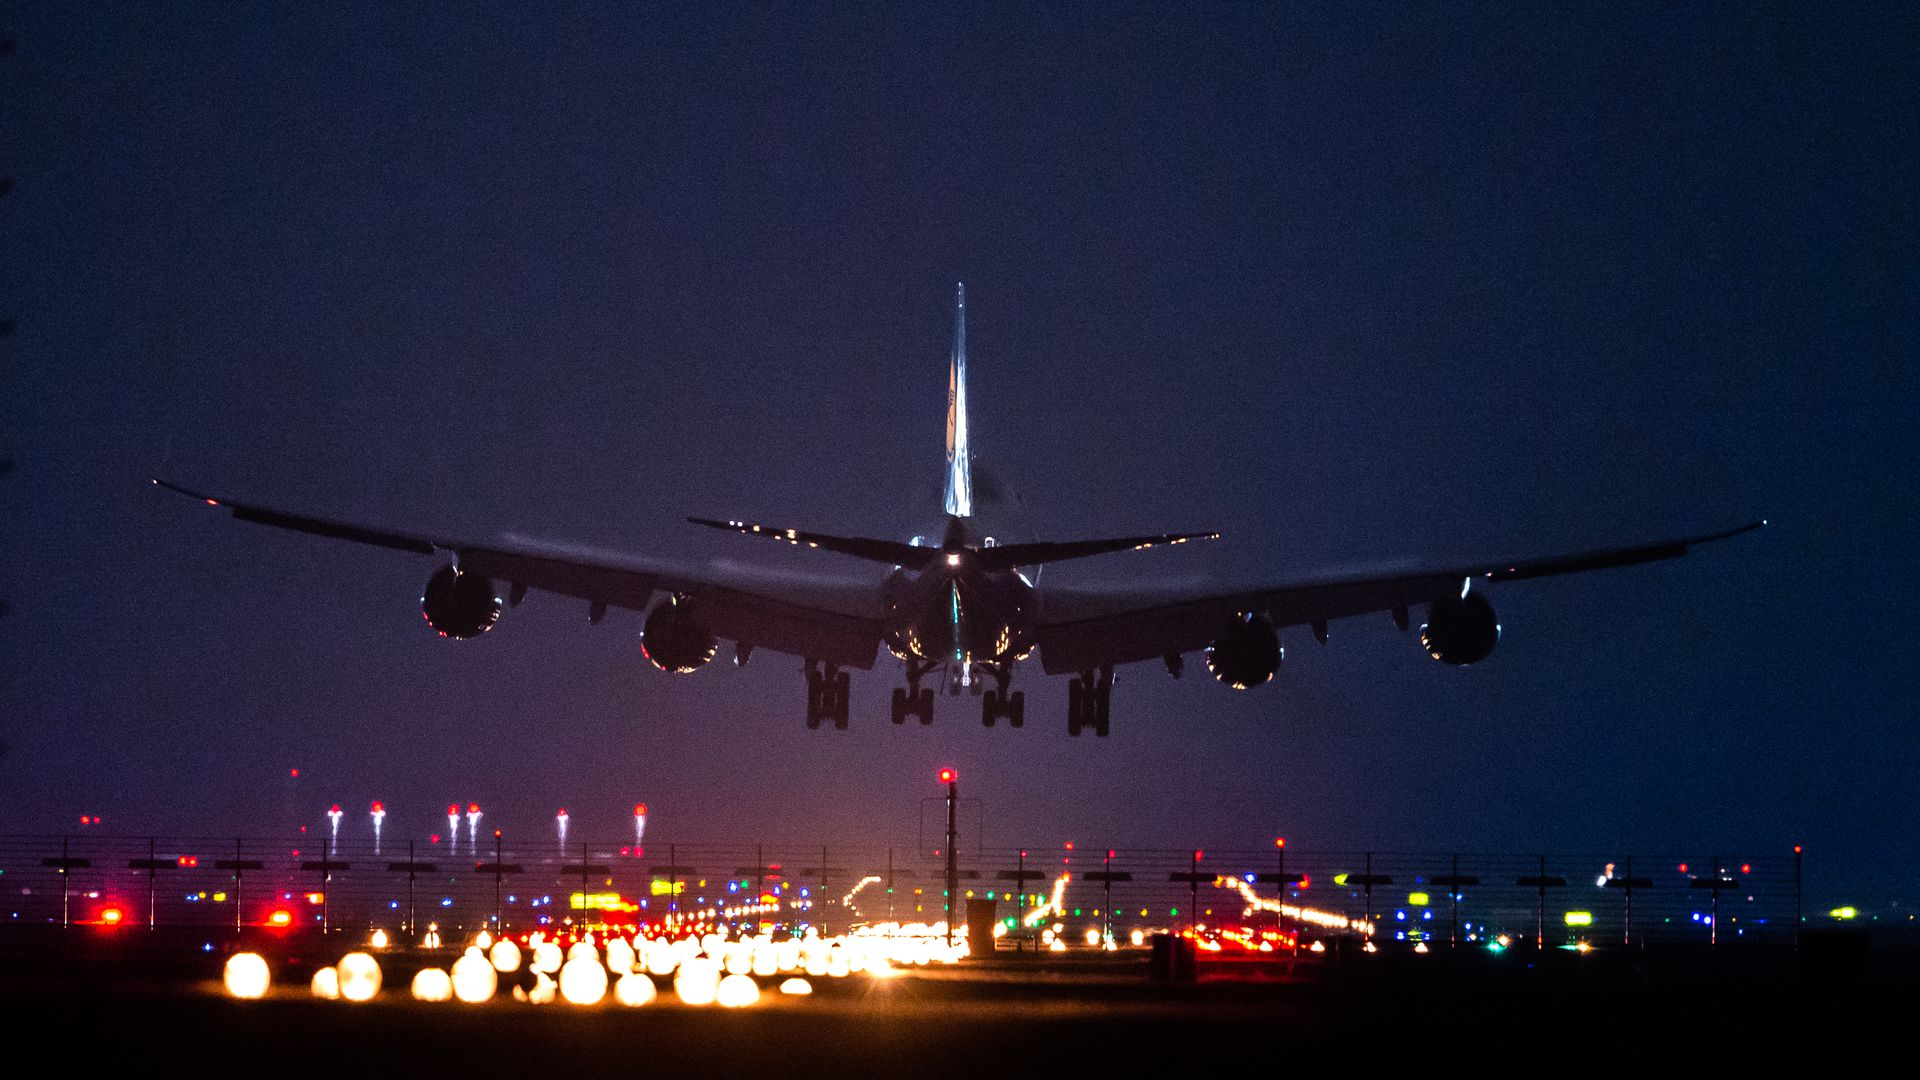 Airplane landing in dark sky.